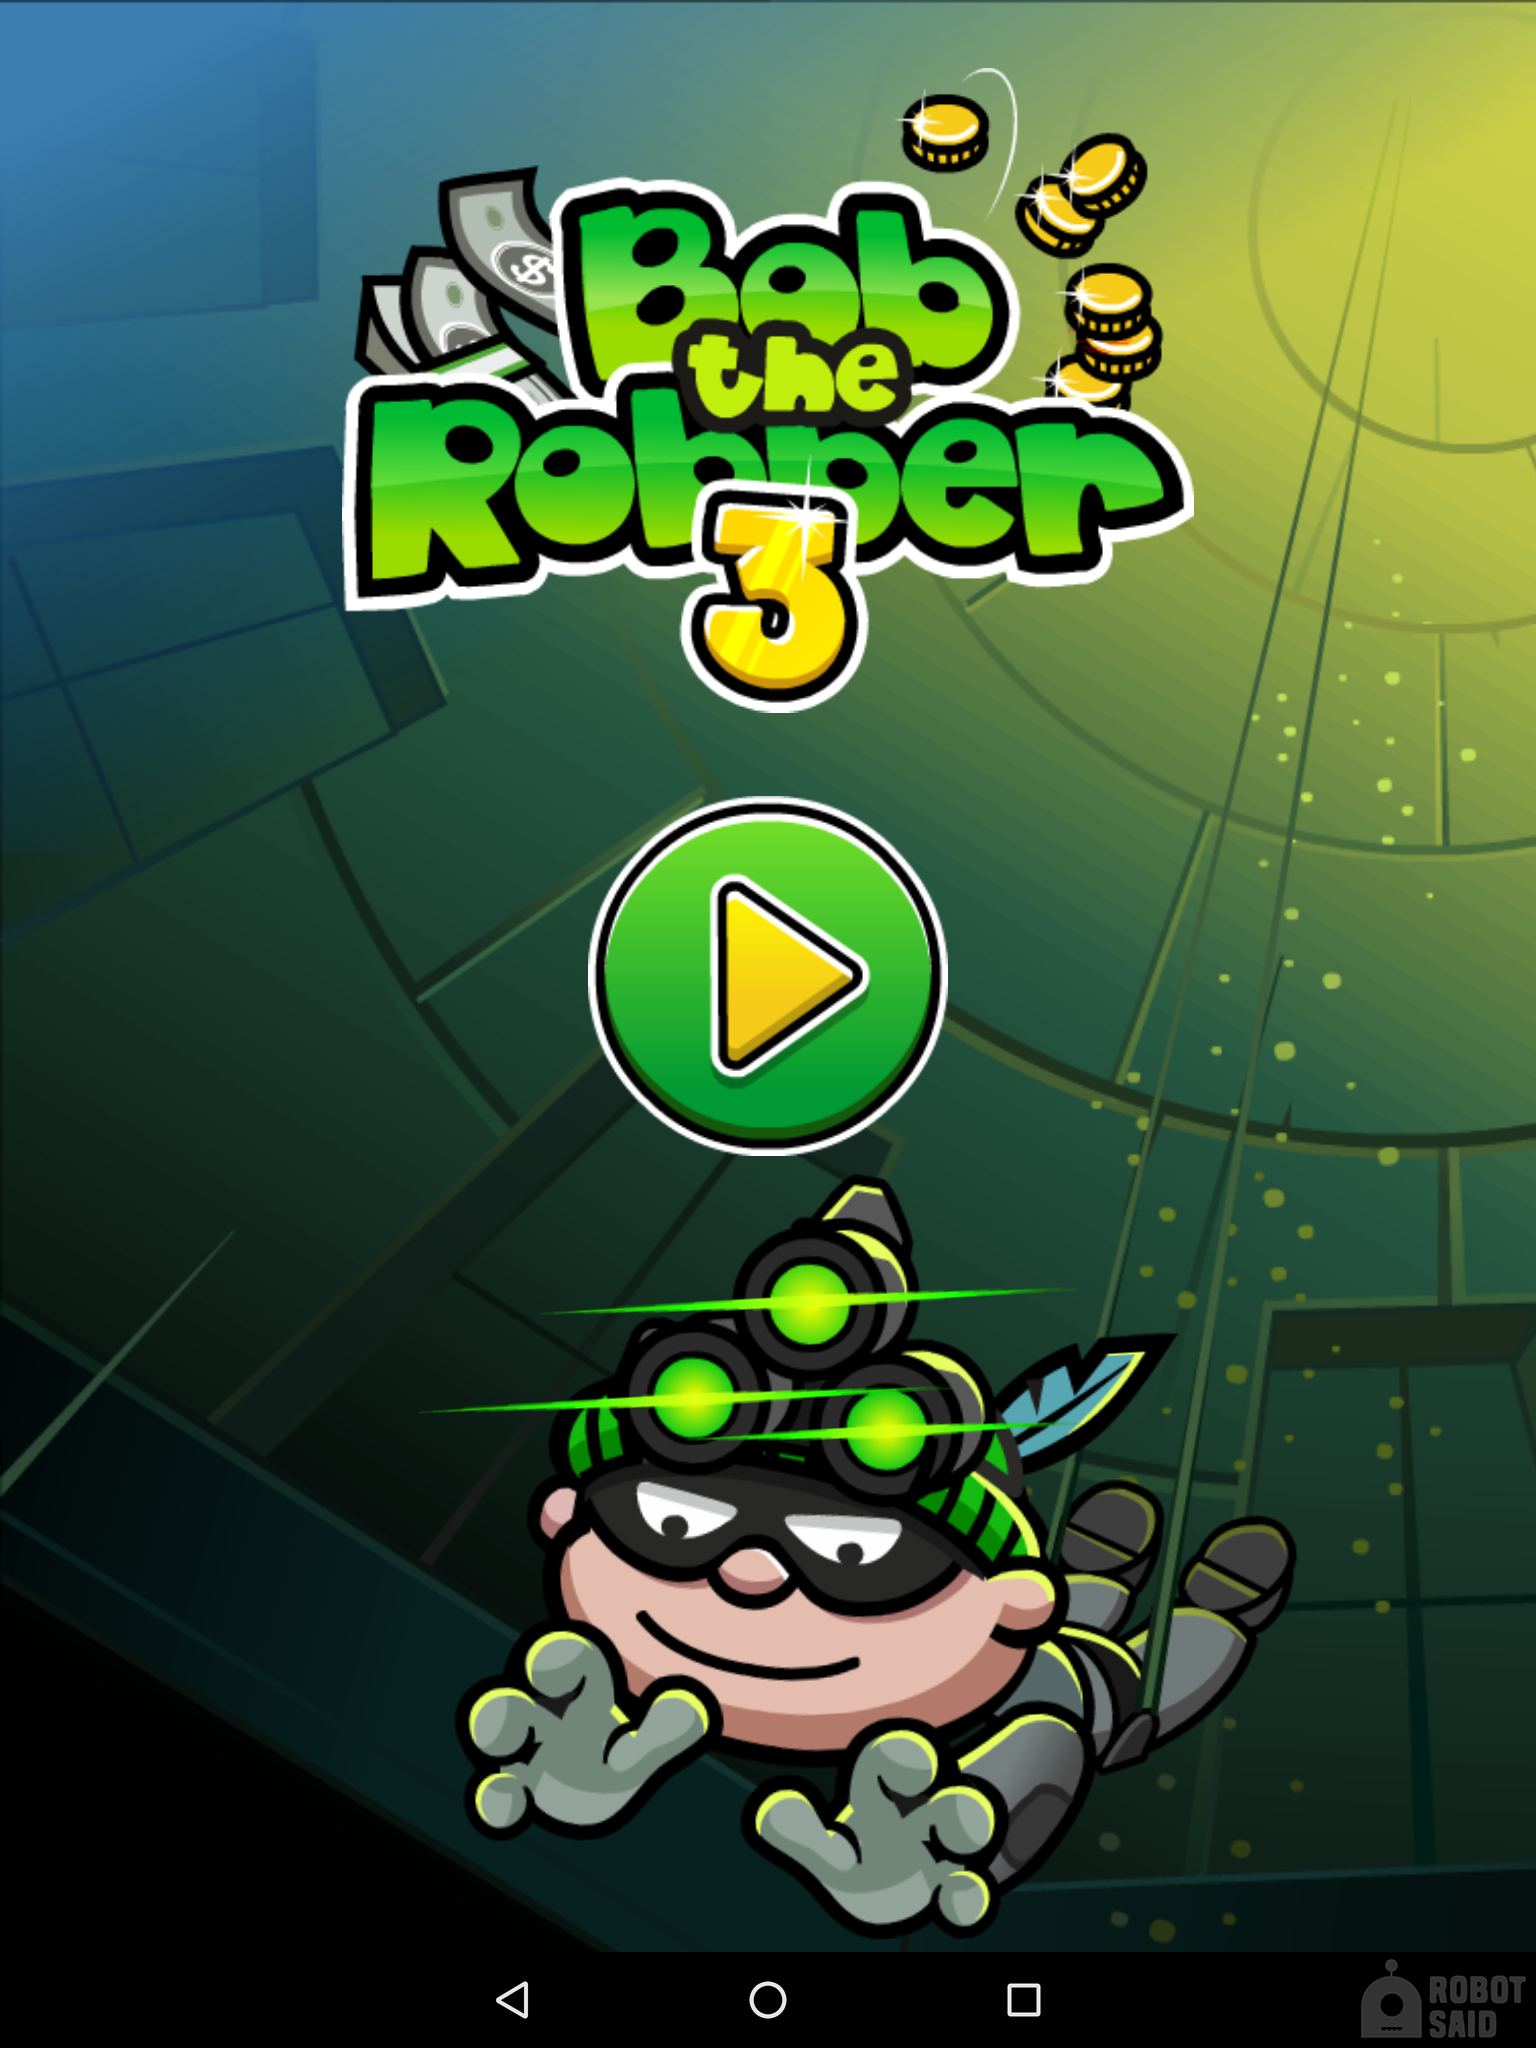 Bob the Robber 3 first official release of the popular franchise on mobile